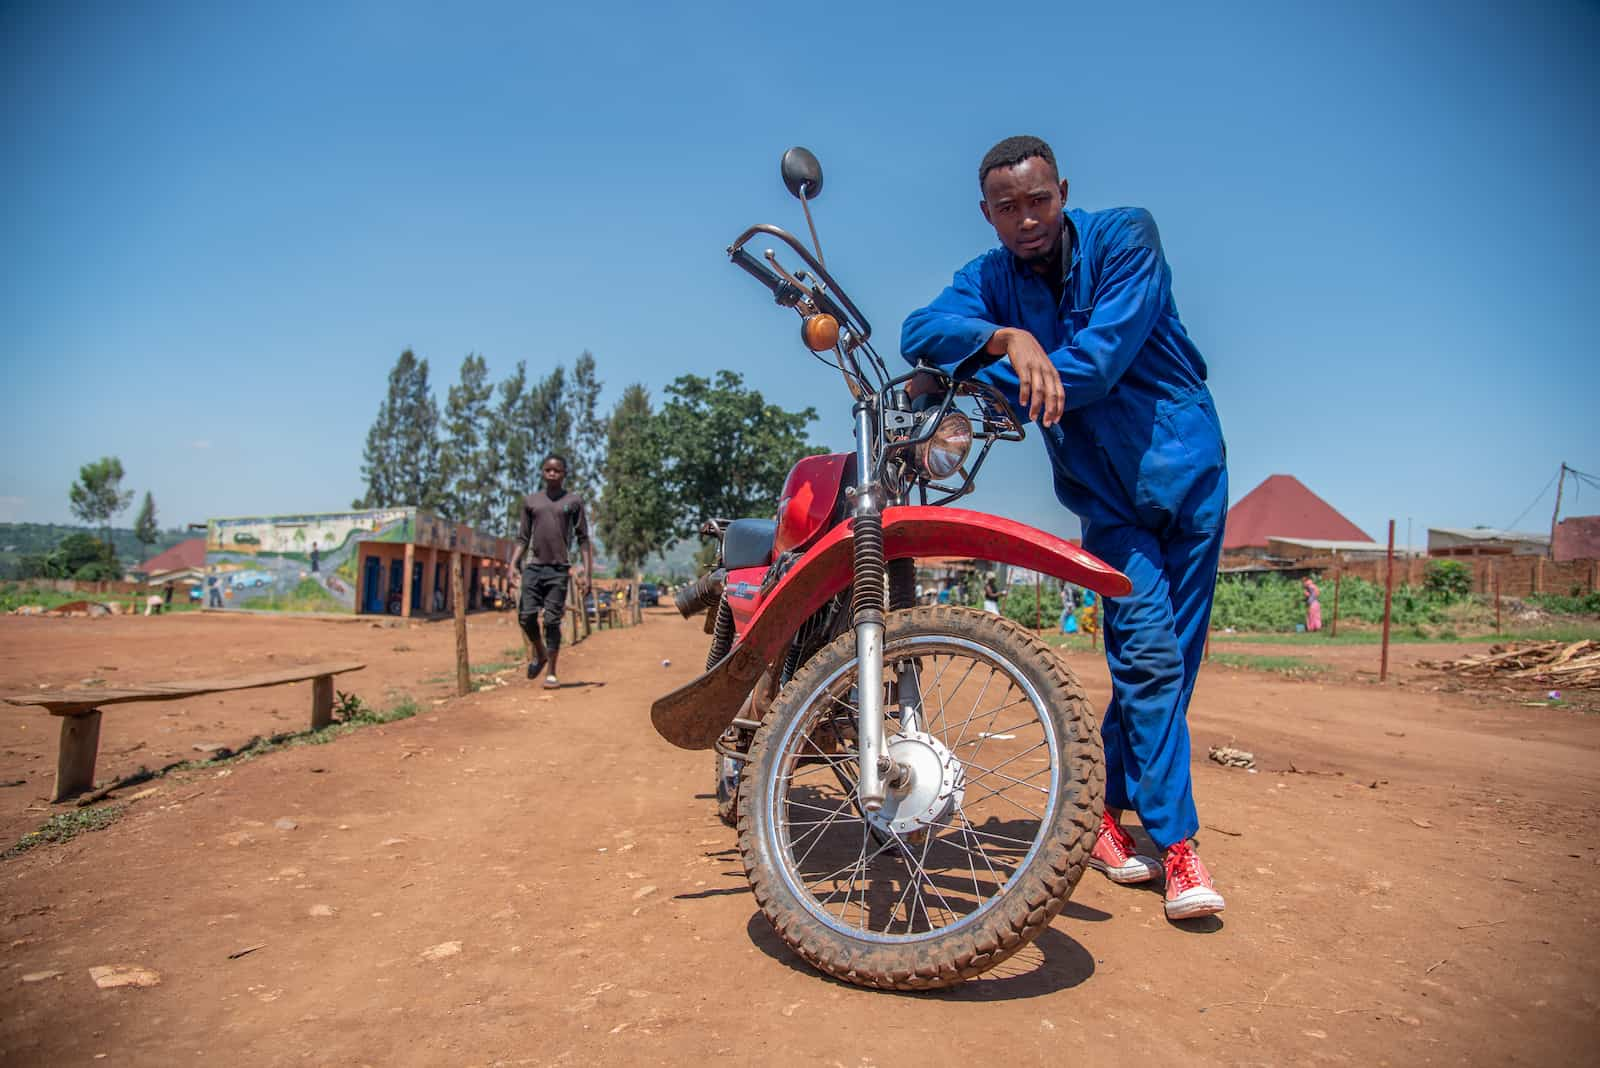 A young man in a blue jumpsuit stands next to a red motorcycle.